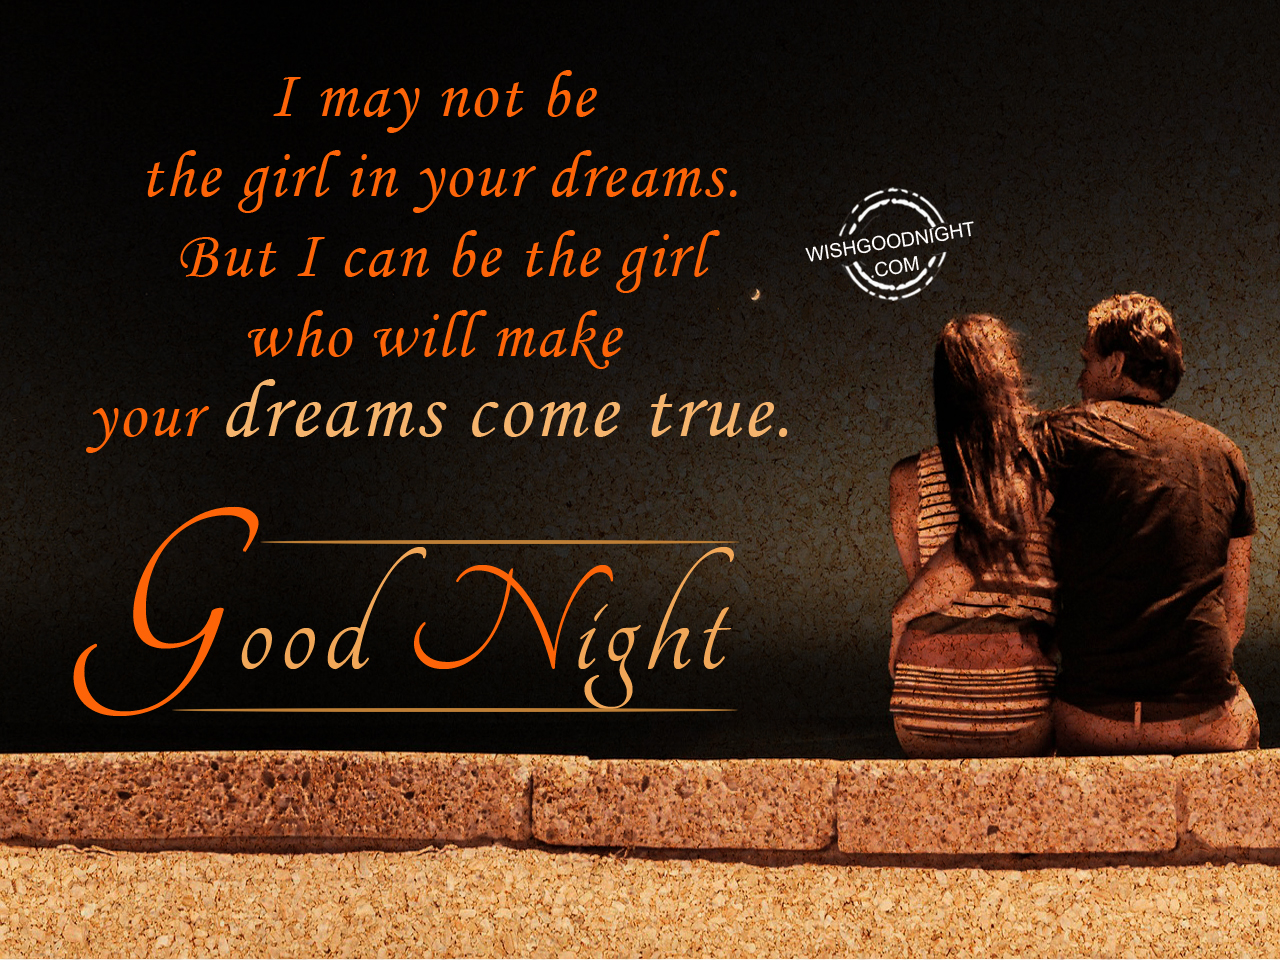 Good Night Wishes For Husband Good Night Pictures Wishgoodnightcom